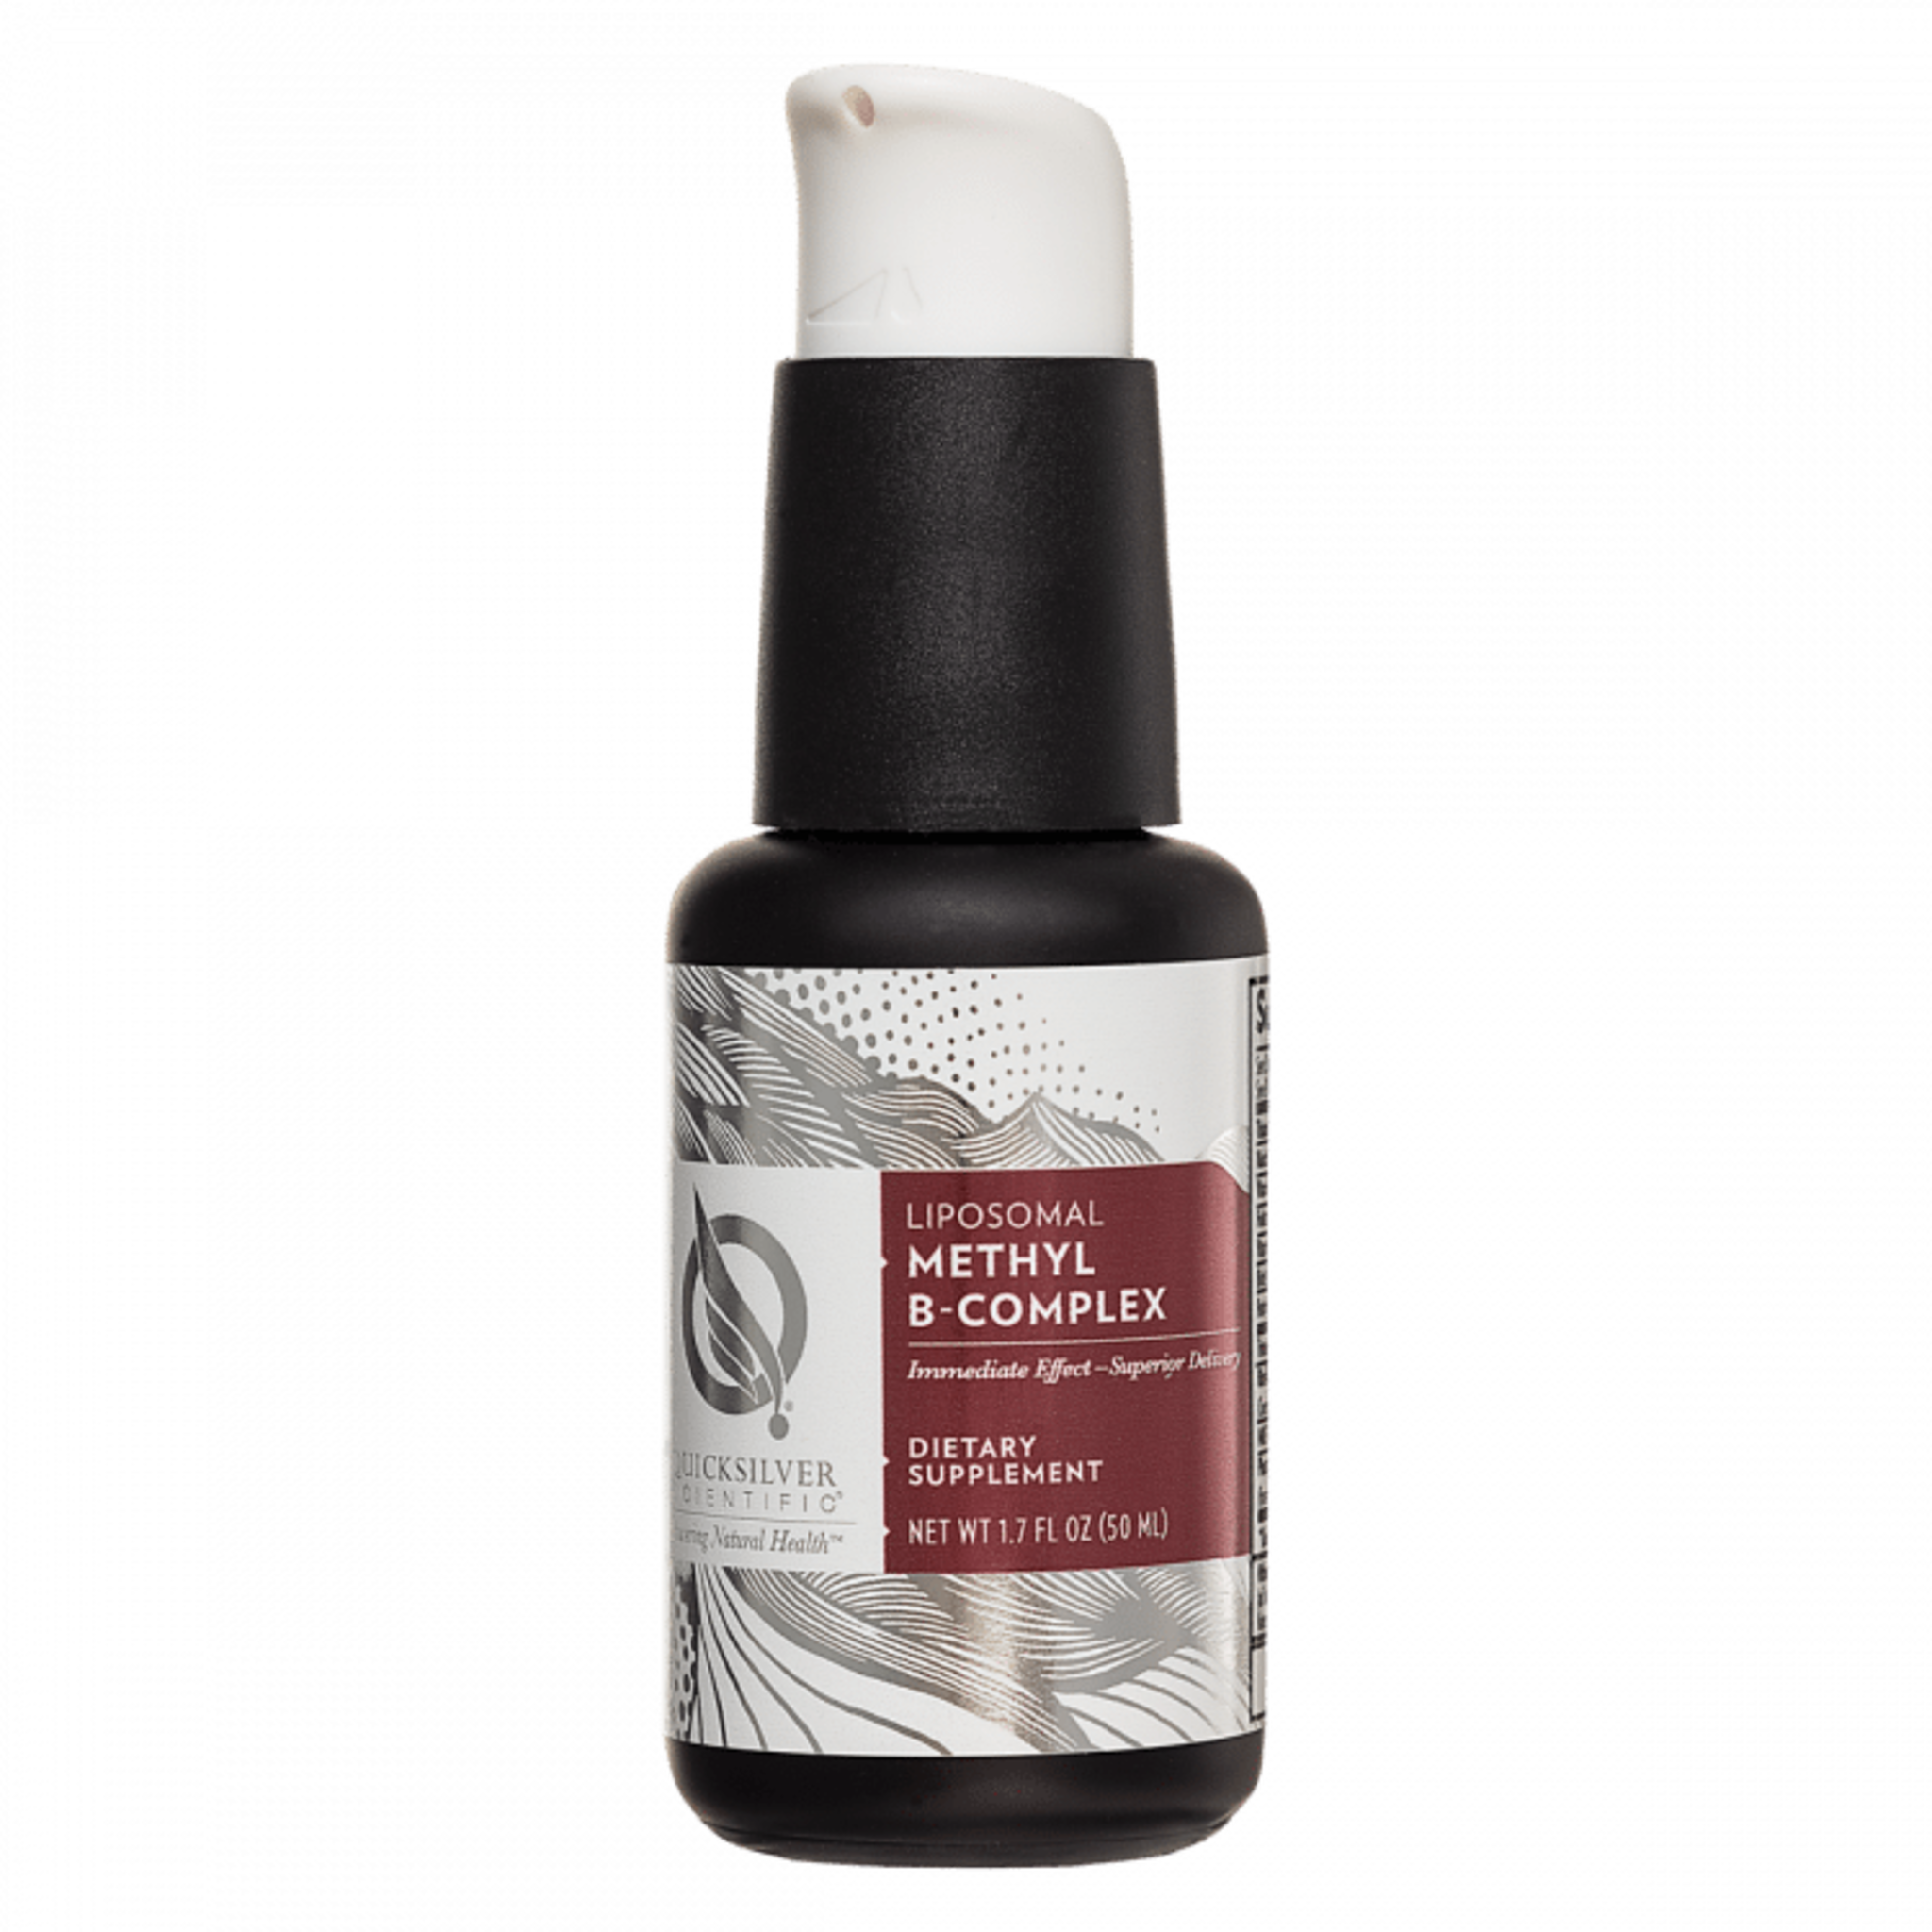 QUICKSILVER SCIENTIFIC - LIPOSOMAL B-COMPLEX (50ML)